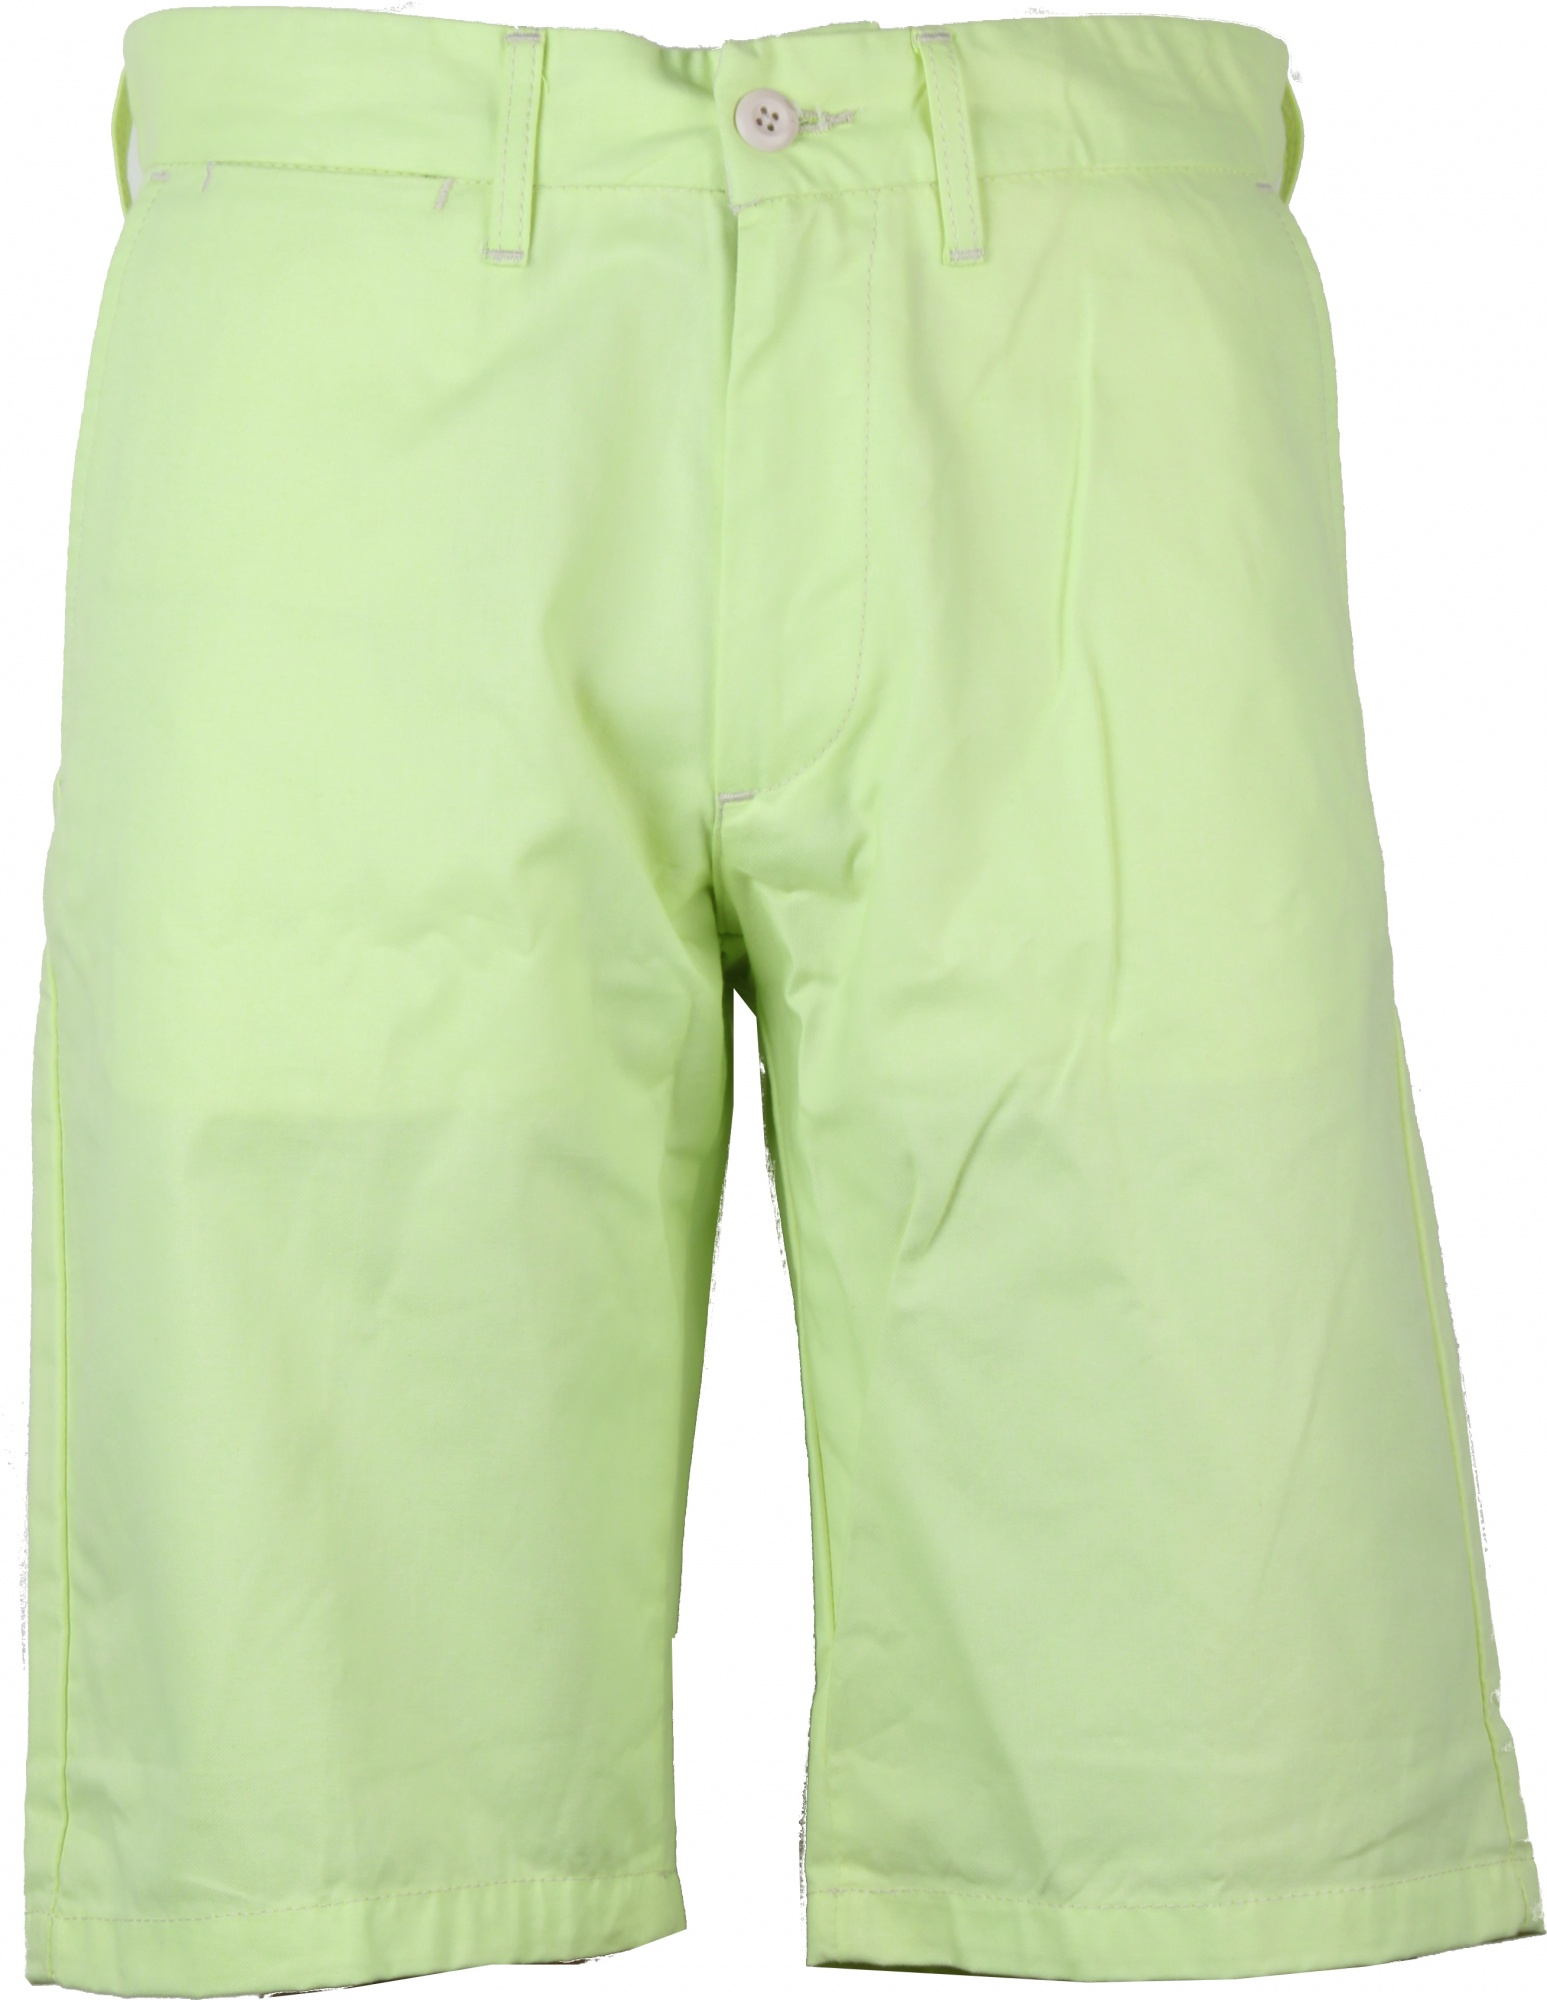 Short Korte Broek Heren.Carhartt Korte Broek Johnson Short Rigid Heren Fluorgeel Giga